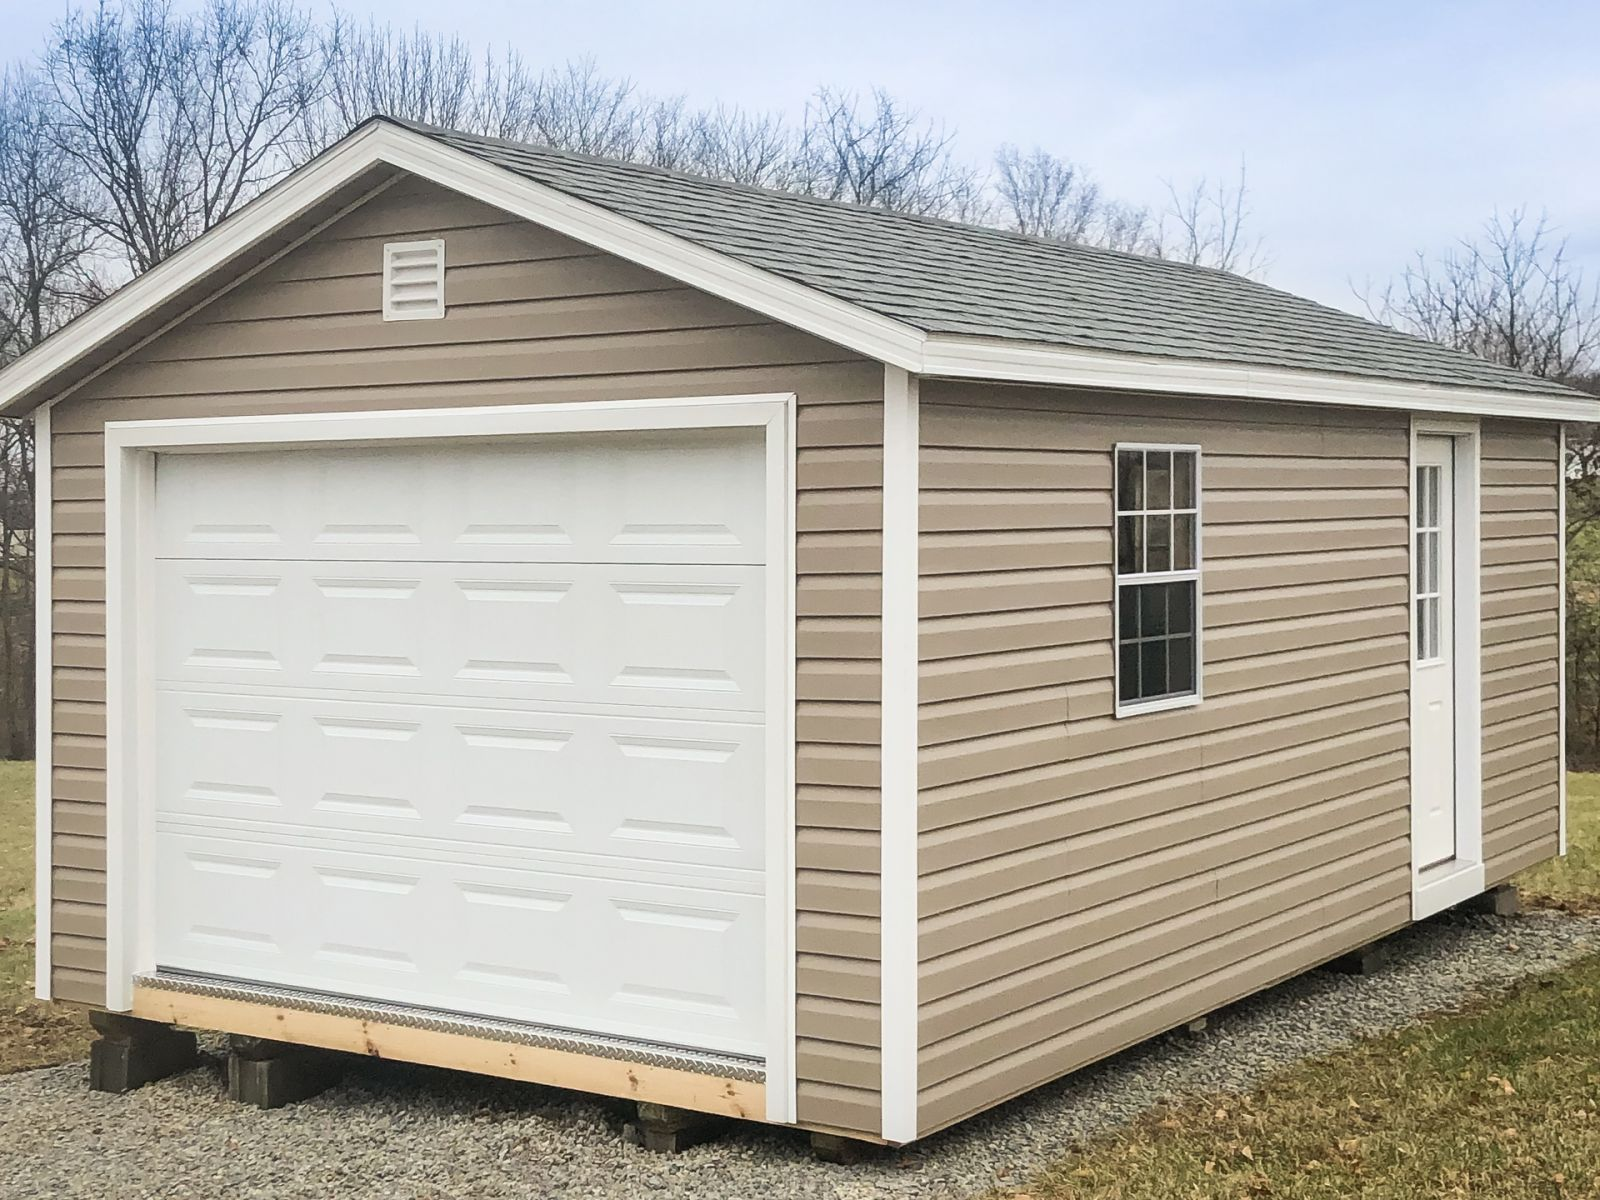 A garage shed for sale in Greensburg, KY